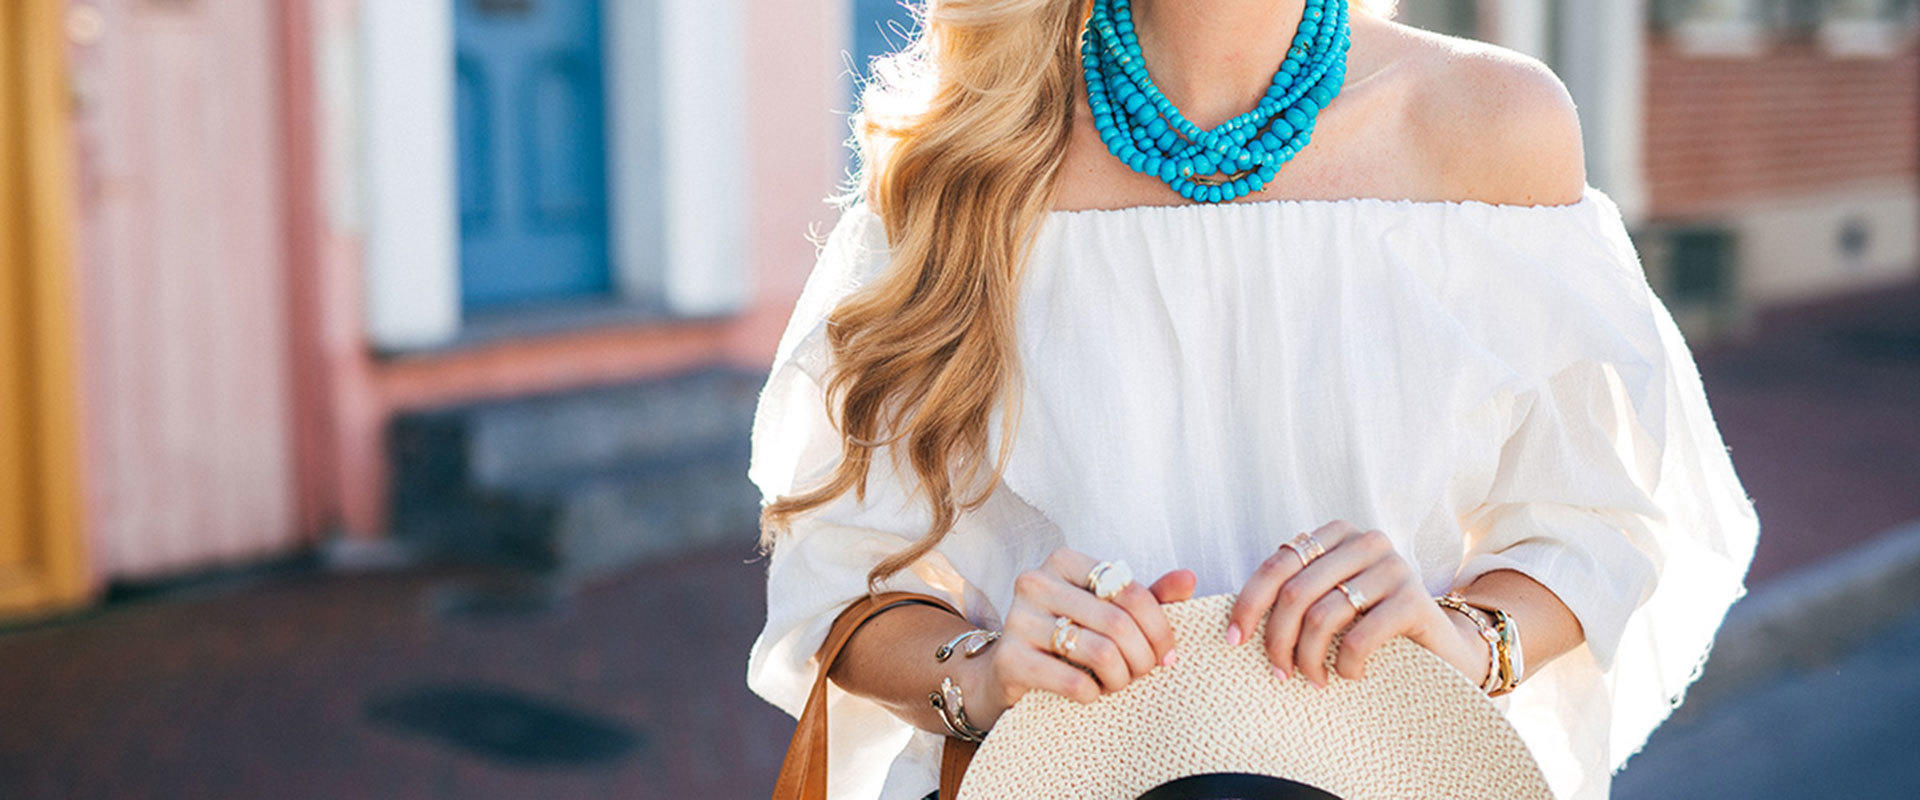 19 Accessories Every Girl Should Own